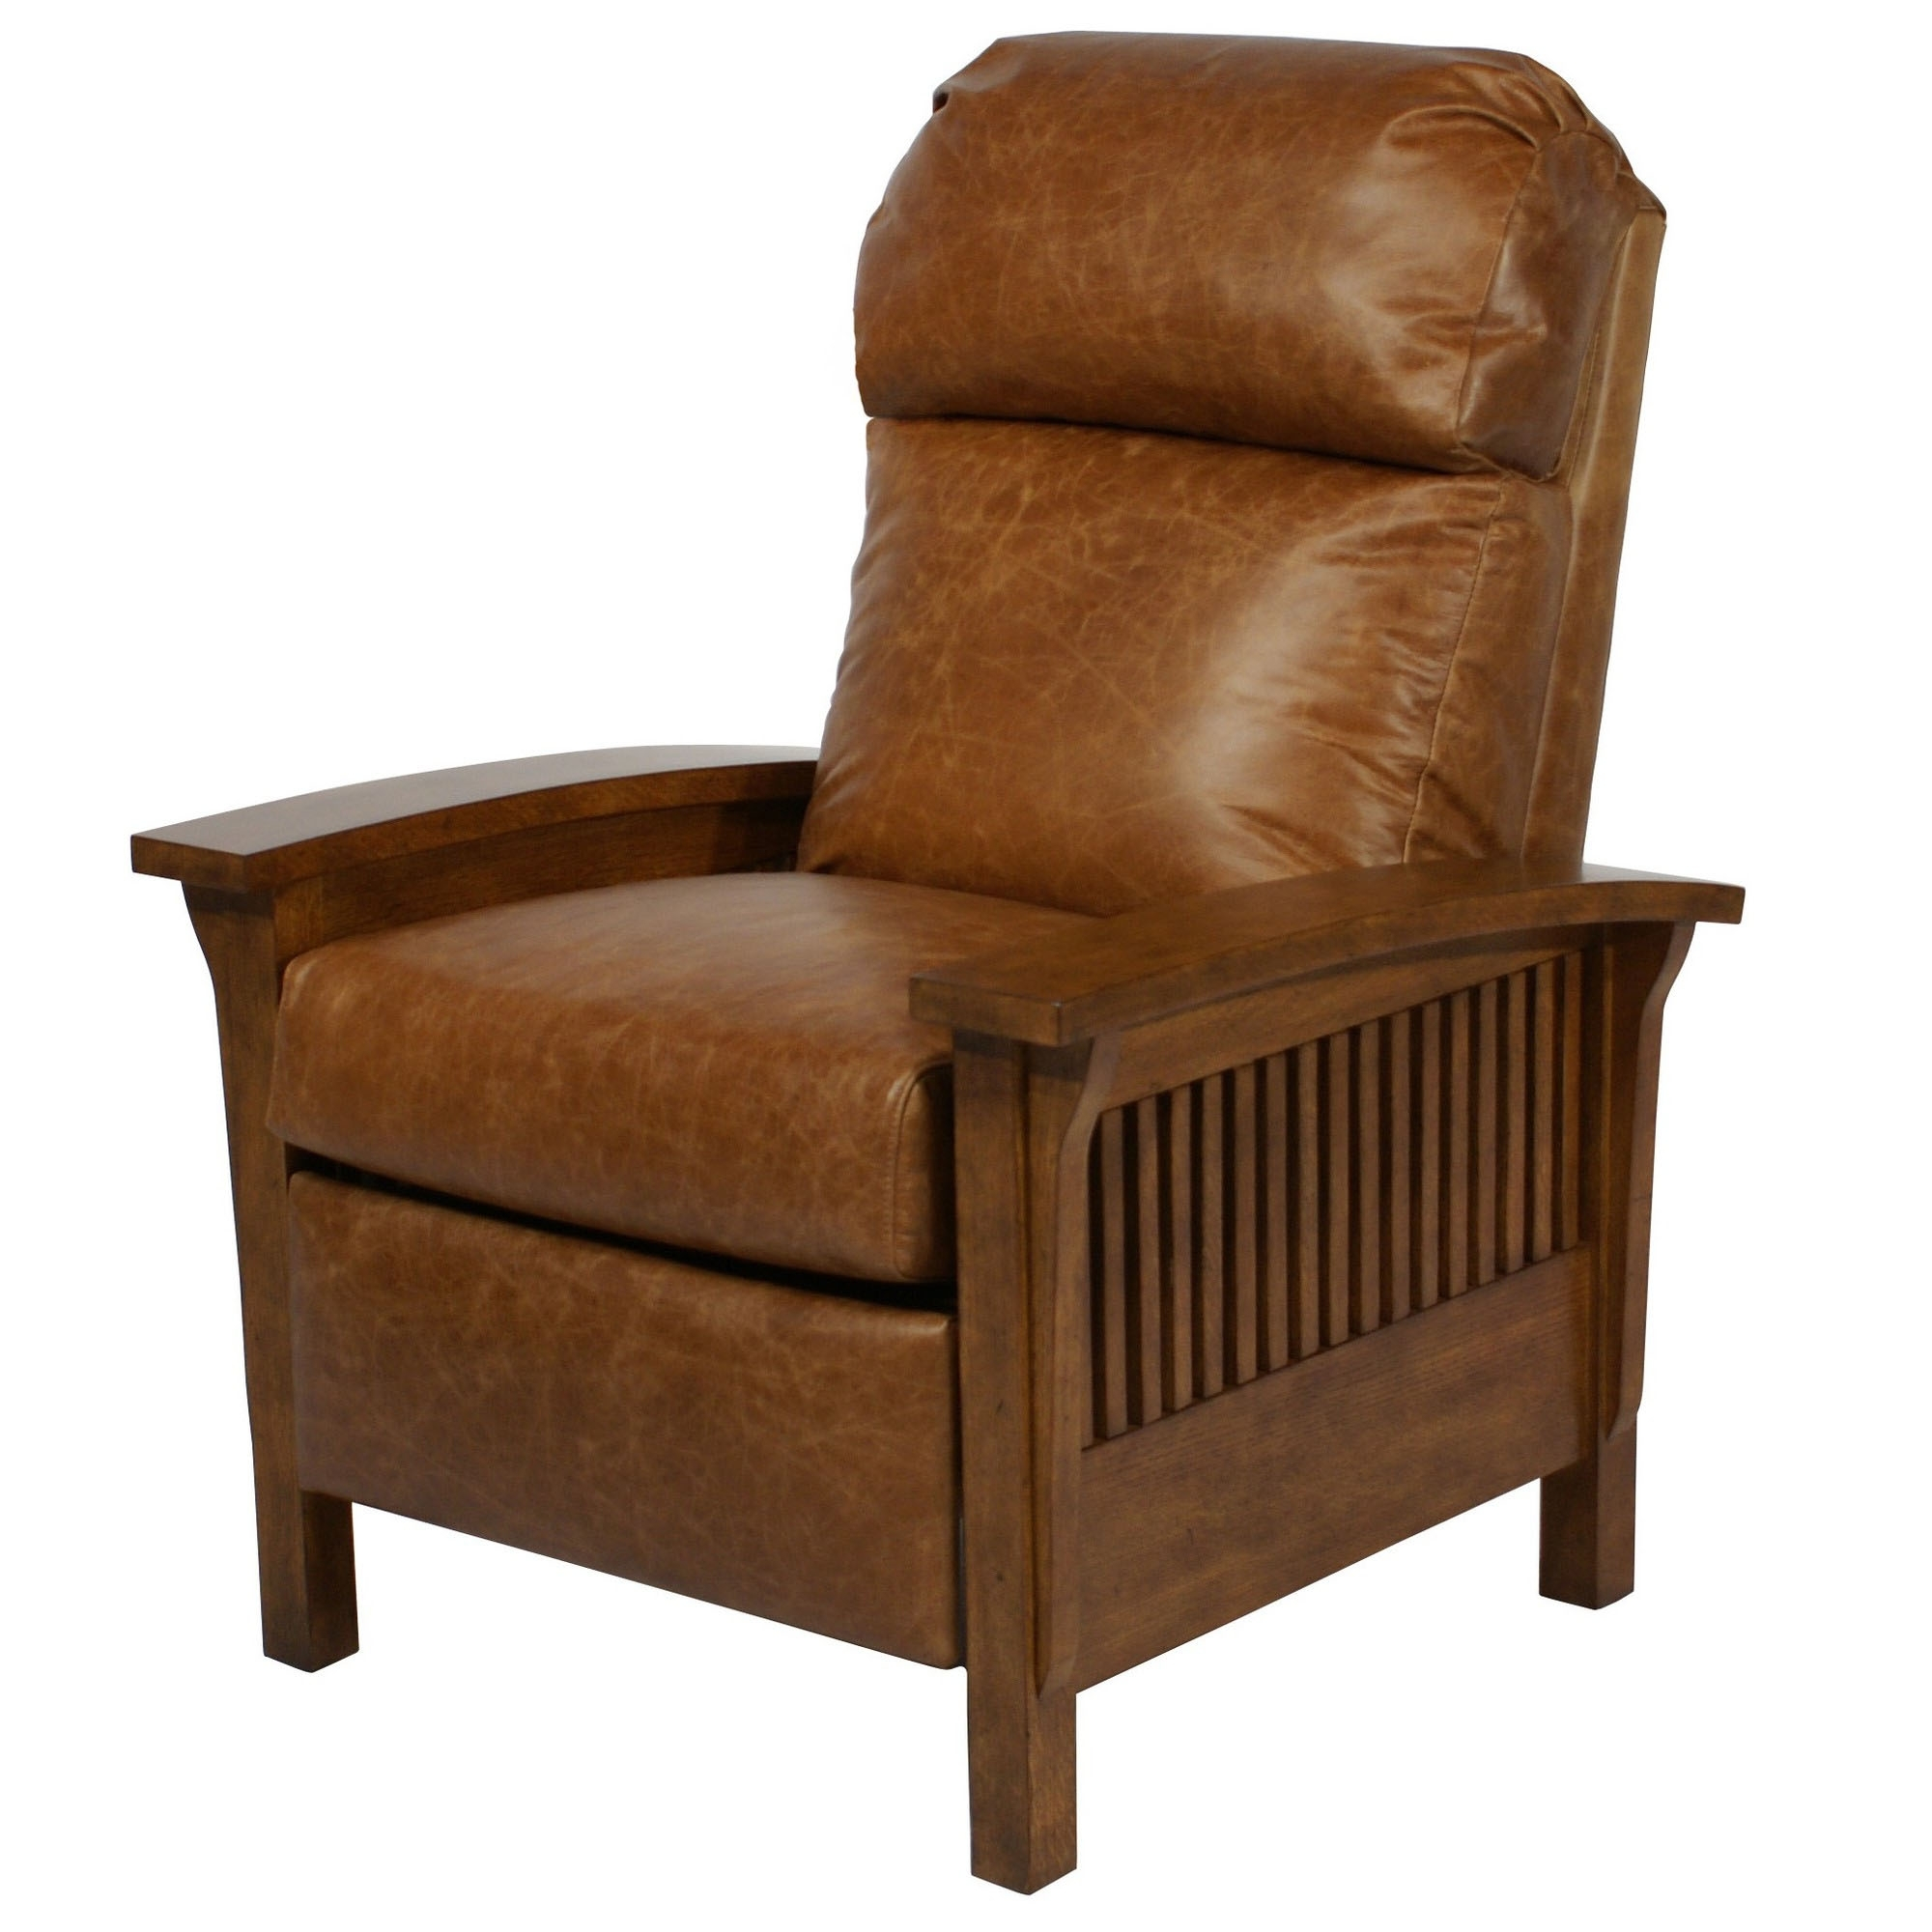 Favorite Craftsman Arm Chairs Pertaining To Barcalounger Craftsman Ii Recliner Chair – Leather Recliner Chair (View 11 of 20)